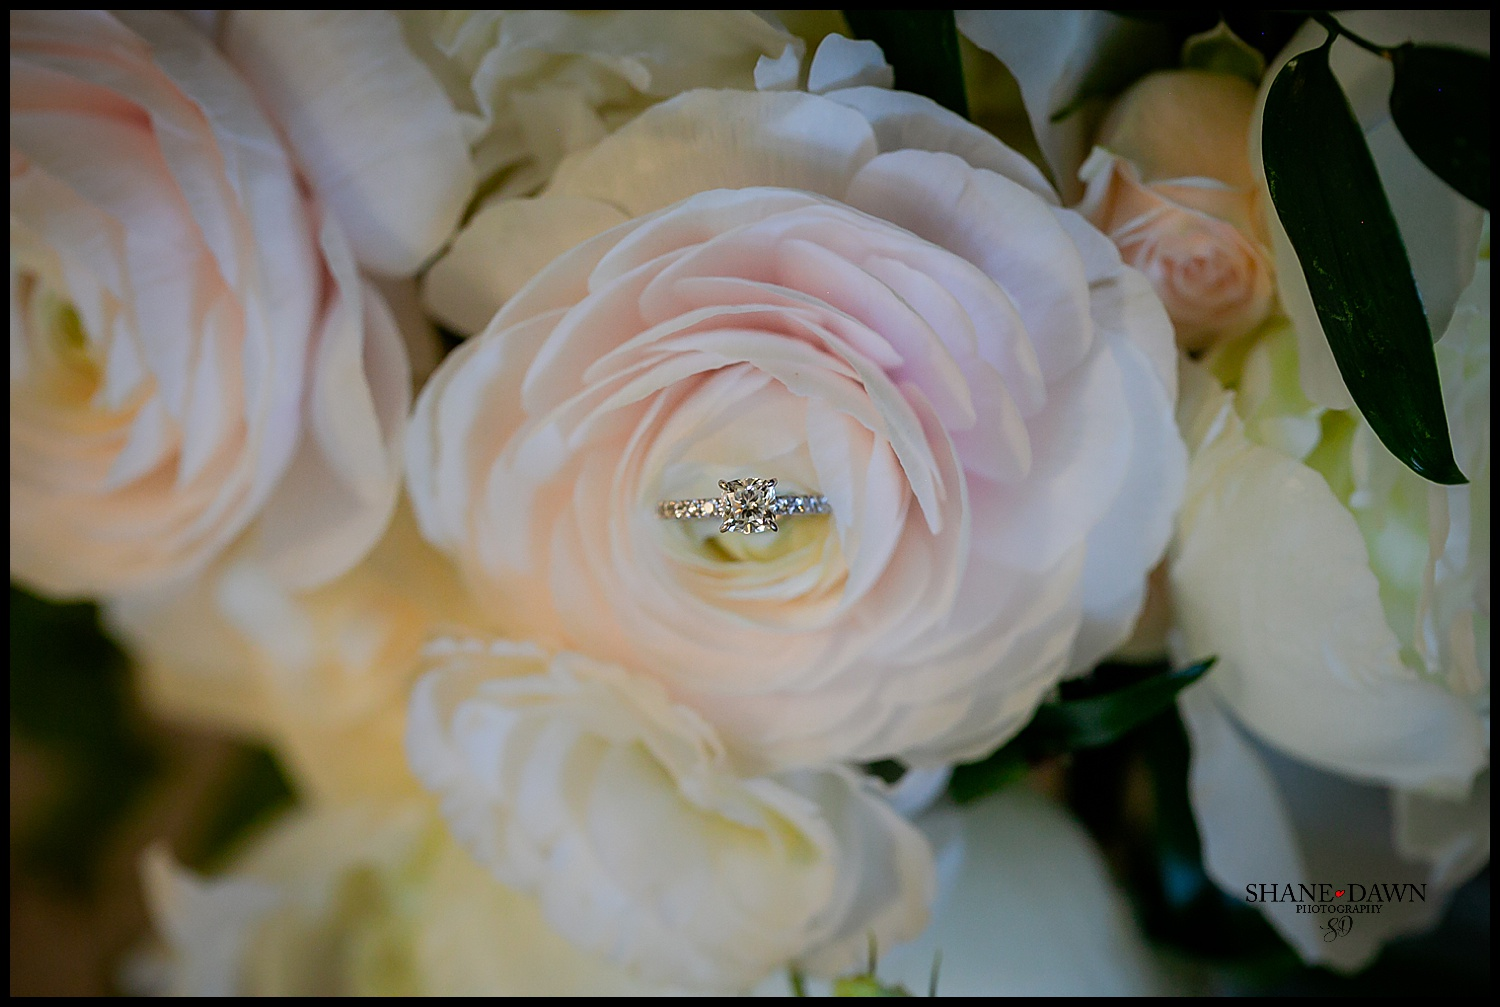 flowers with ring